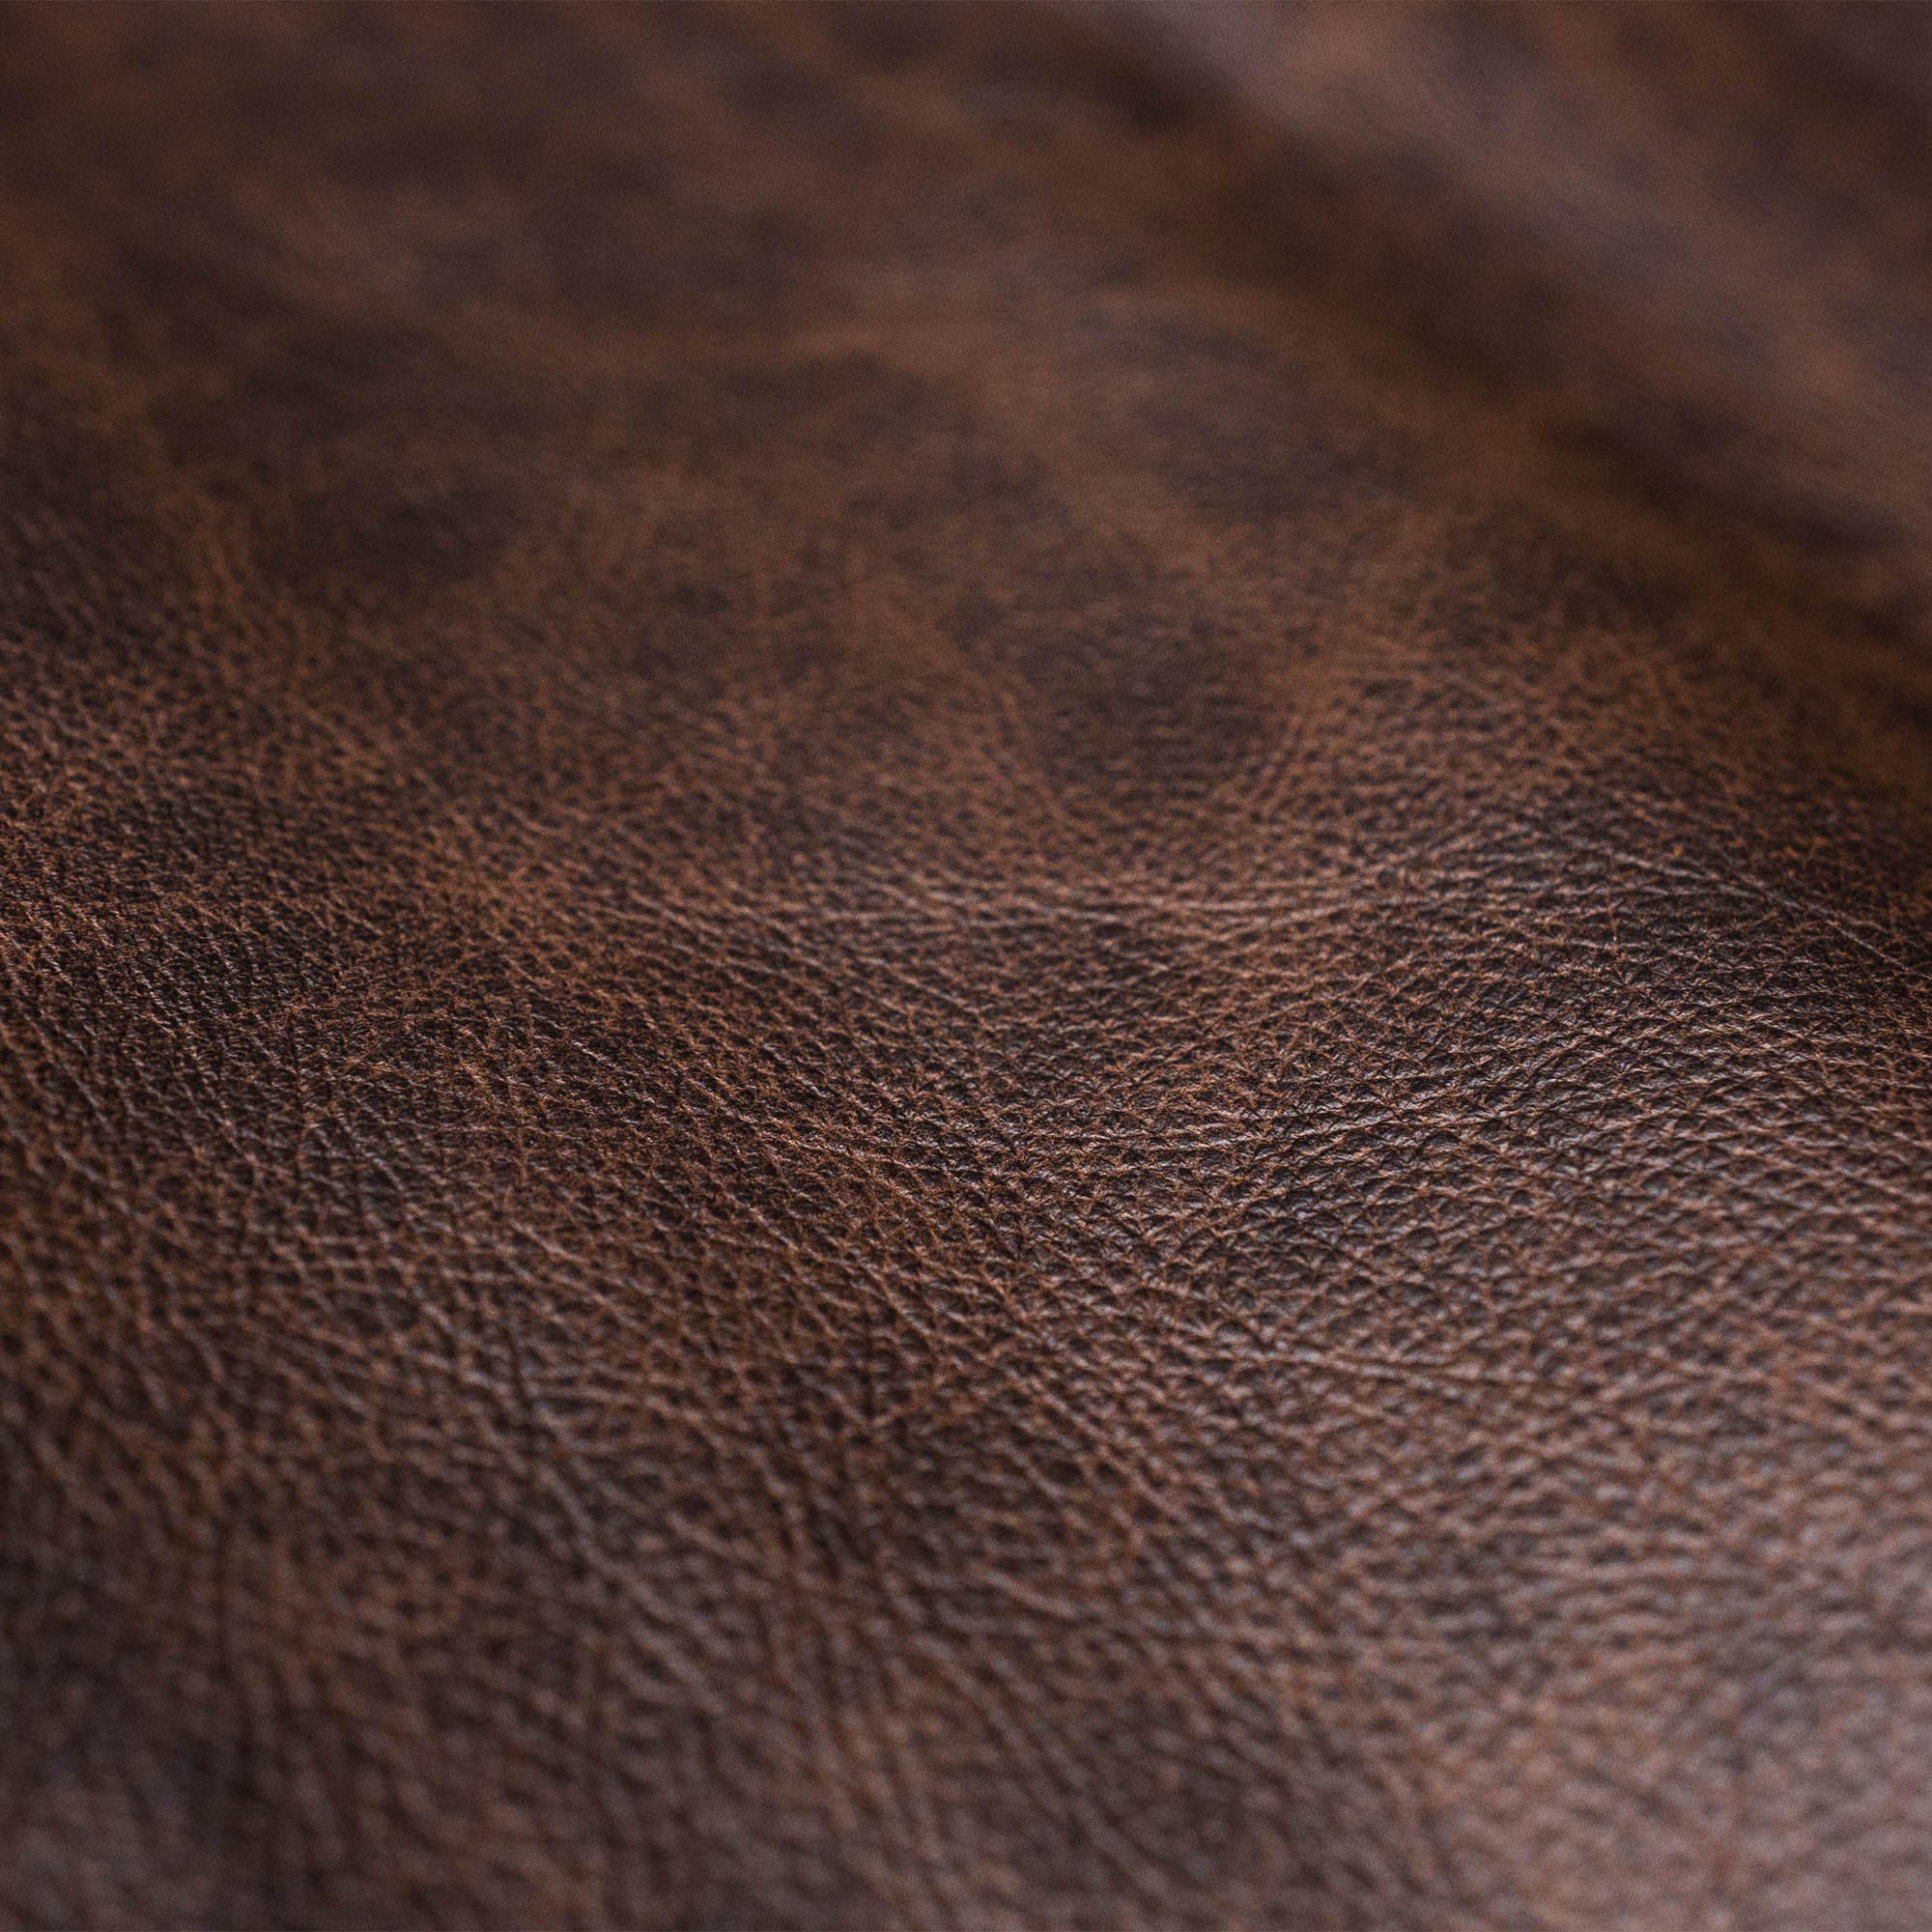 shangri-la-heritage-varenne-marbled-brown-steerhide-jacket-still-life-leather